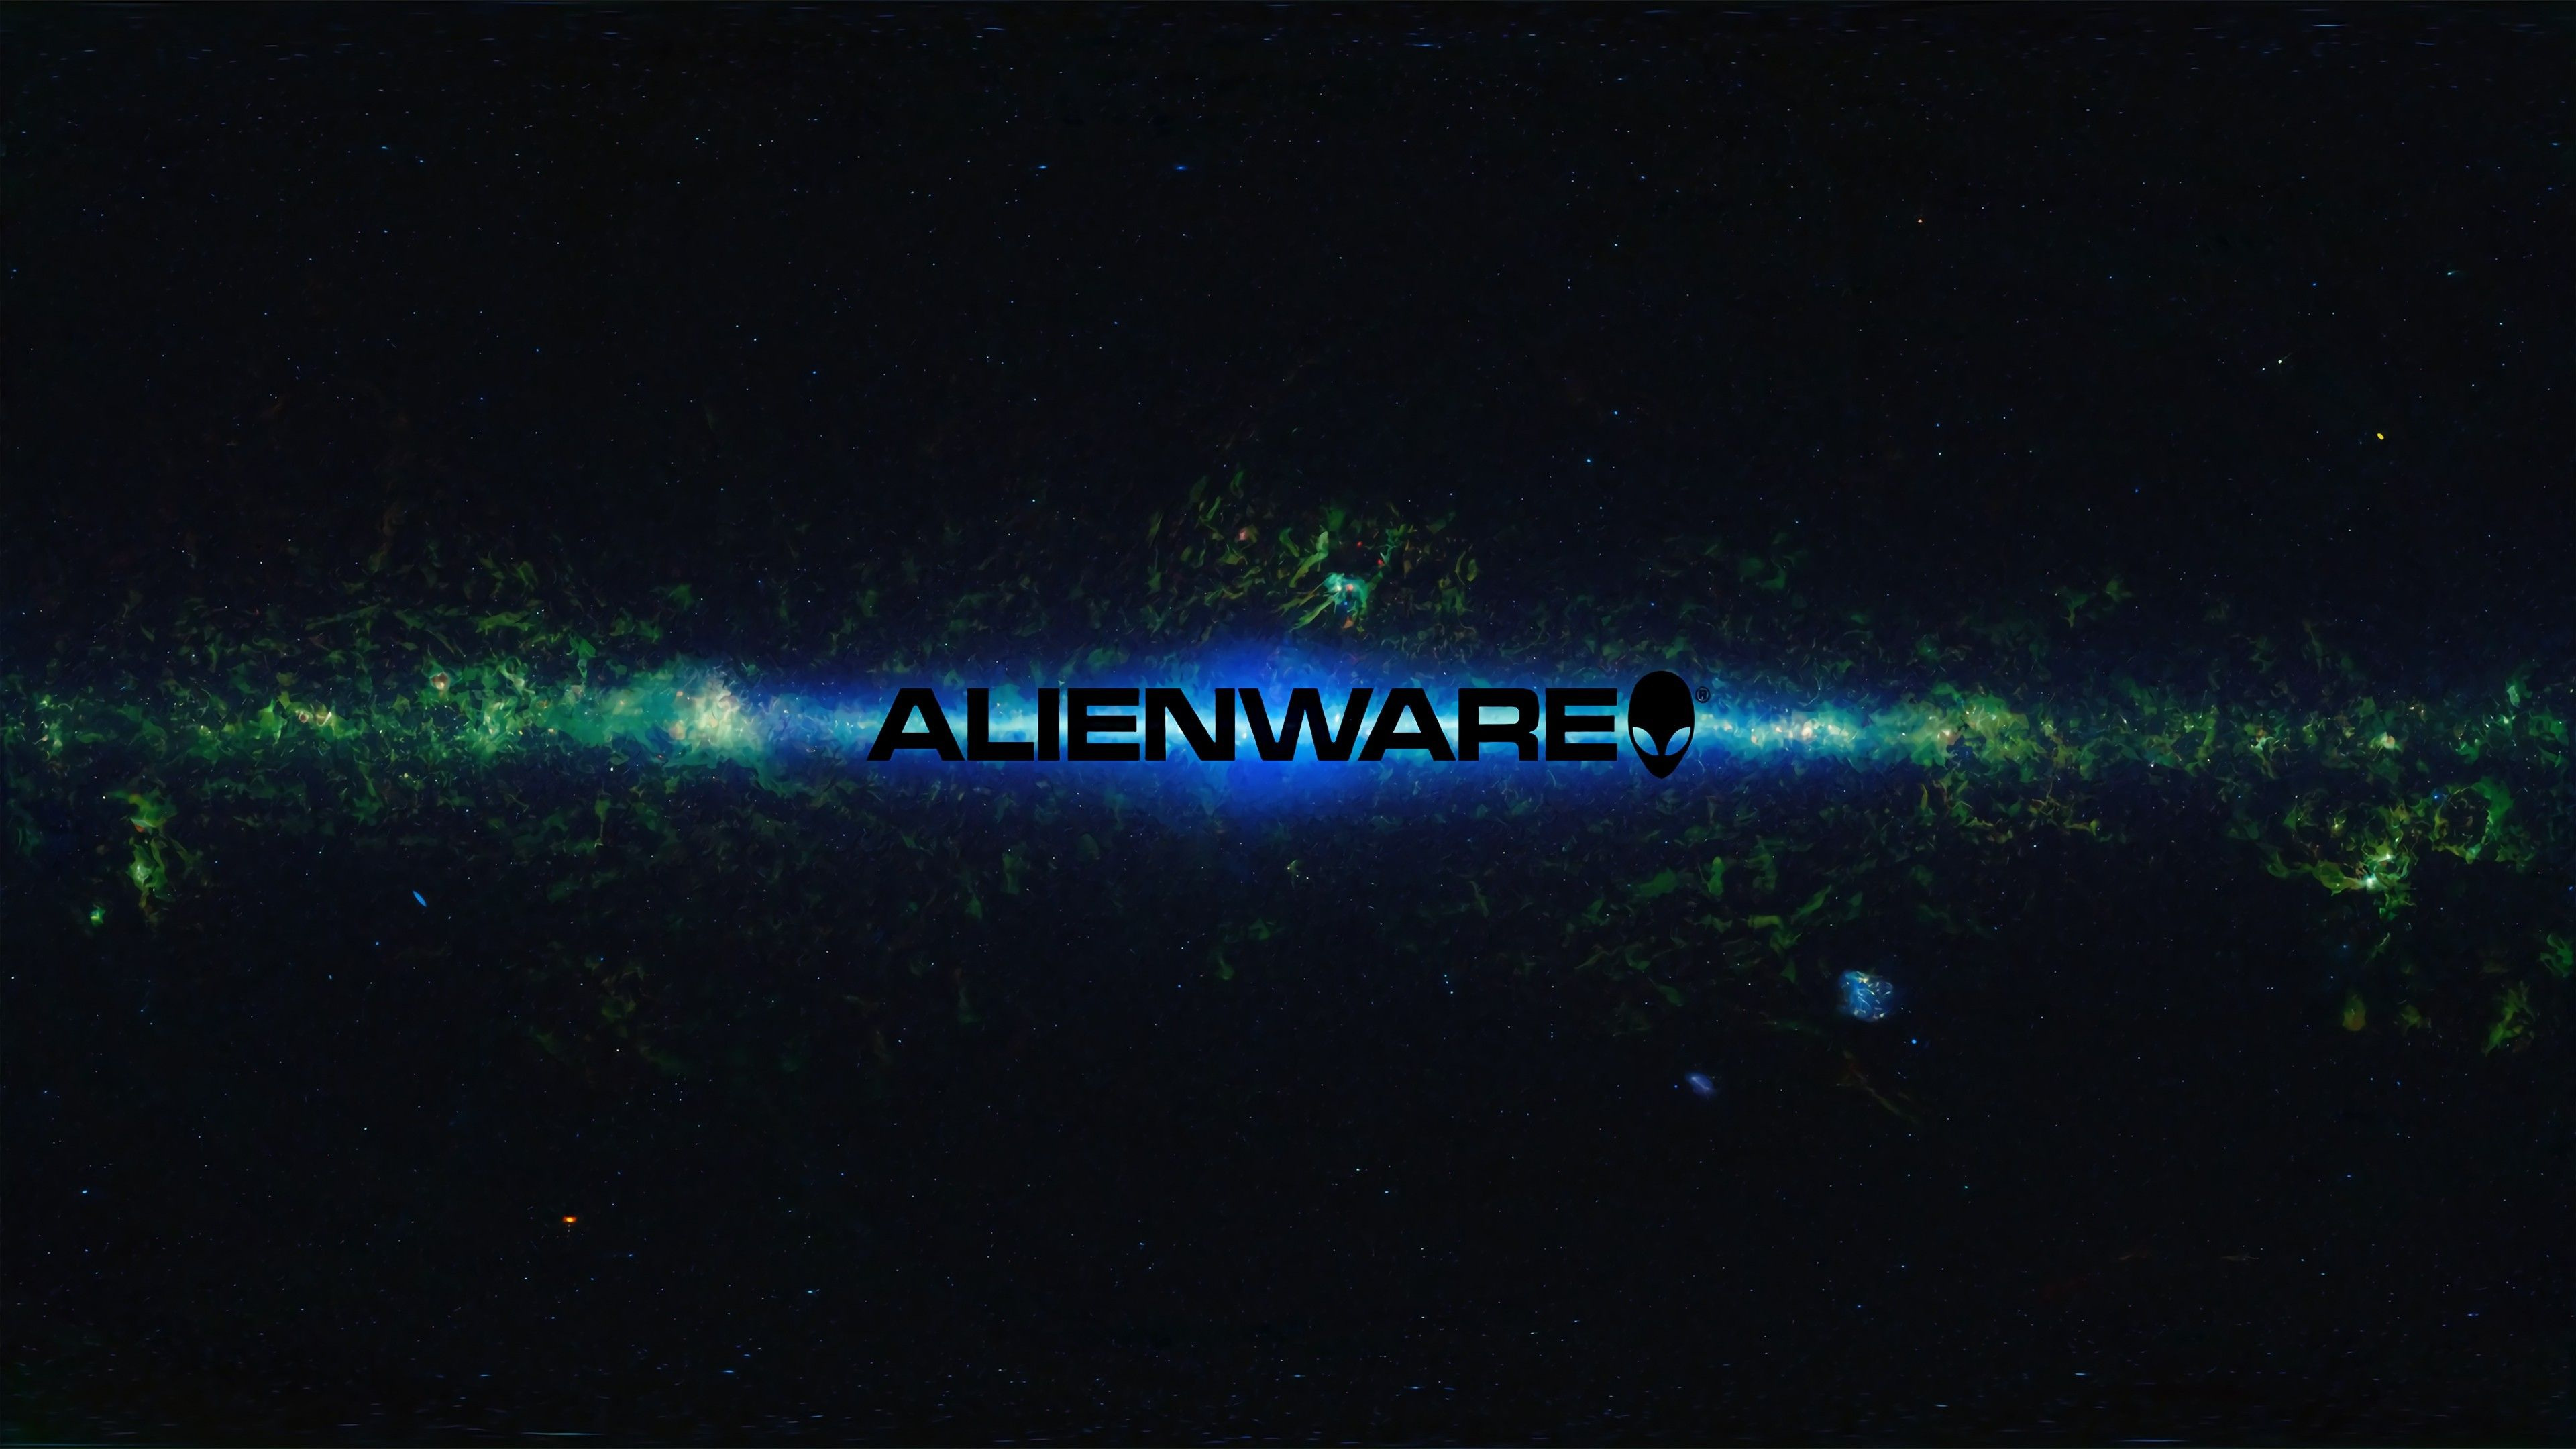 3840x2160 √ How To Leave Alienware 18k Wallpaper Without Being Noticed